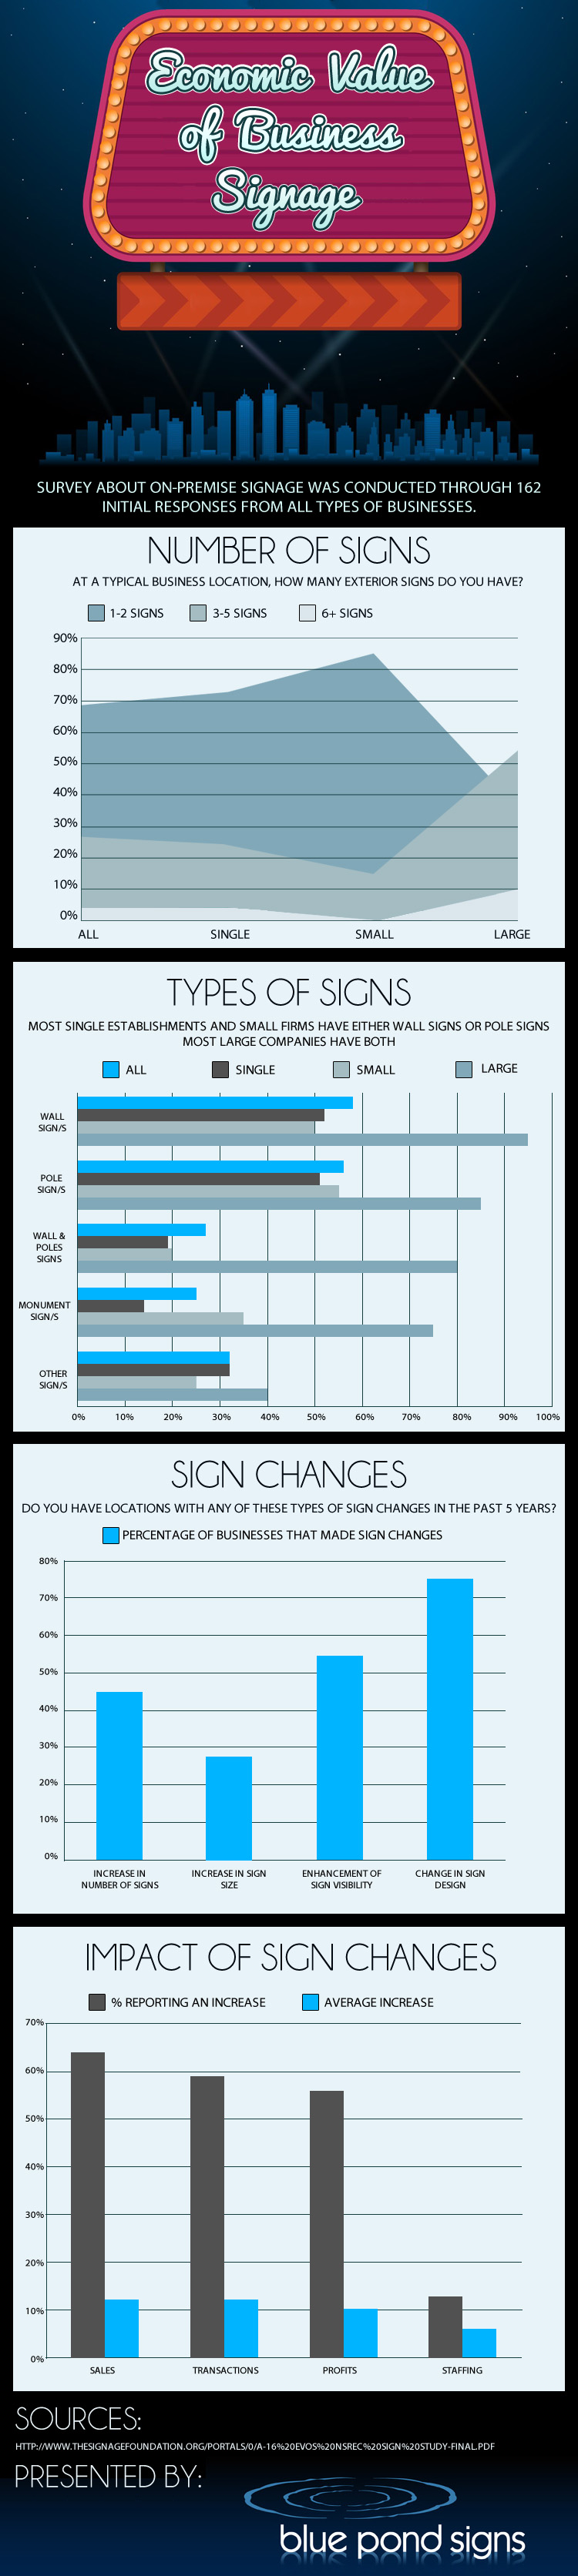 Business Signage Importance-Infographic